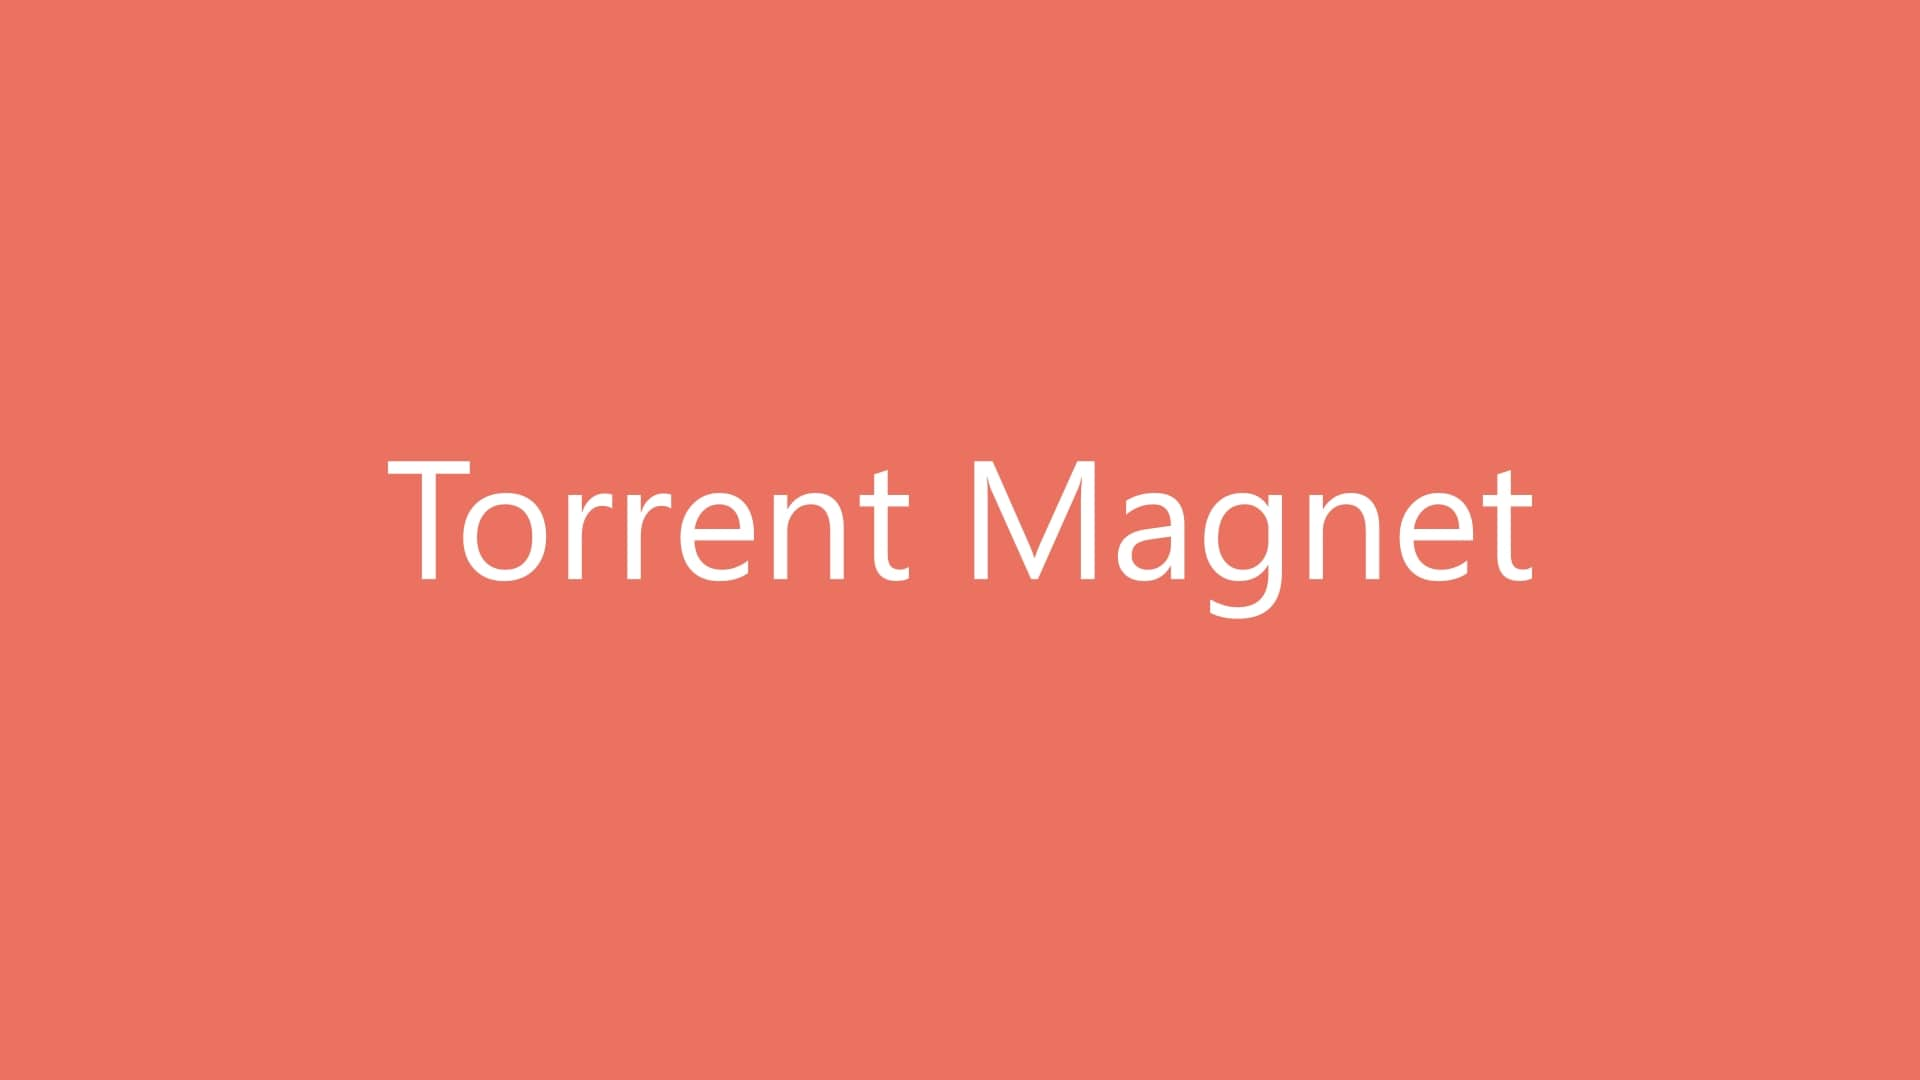 Torrent Magnet